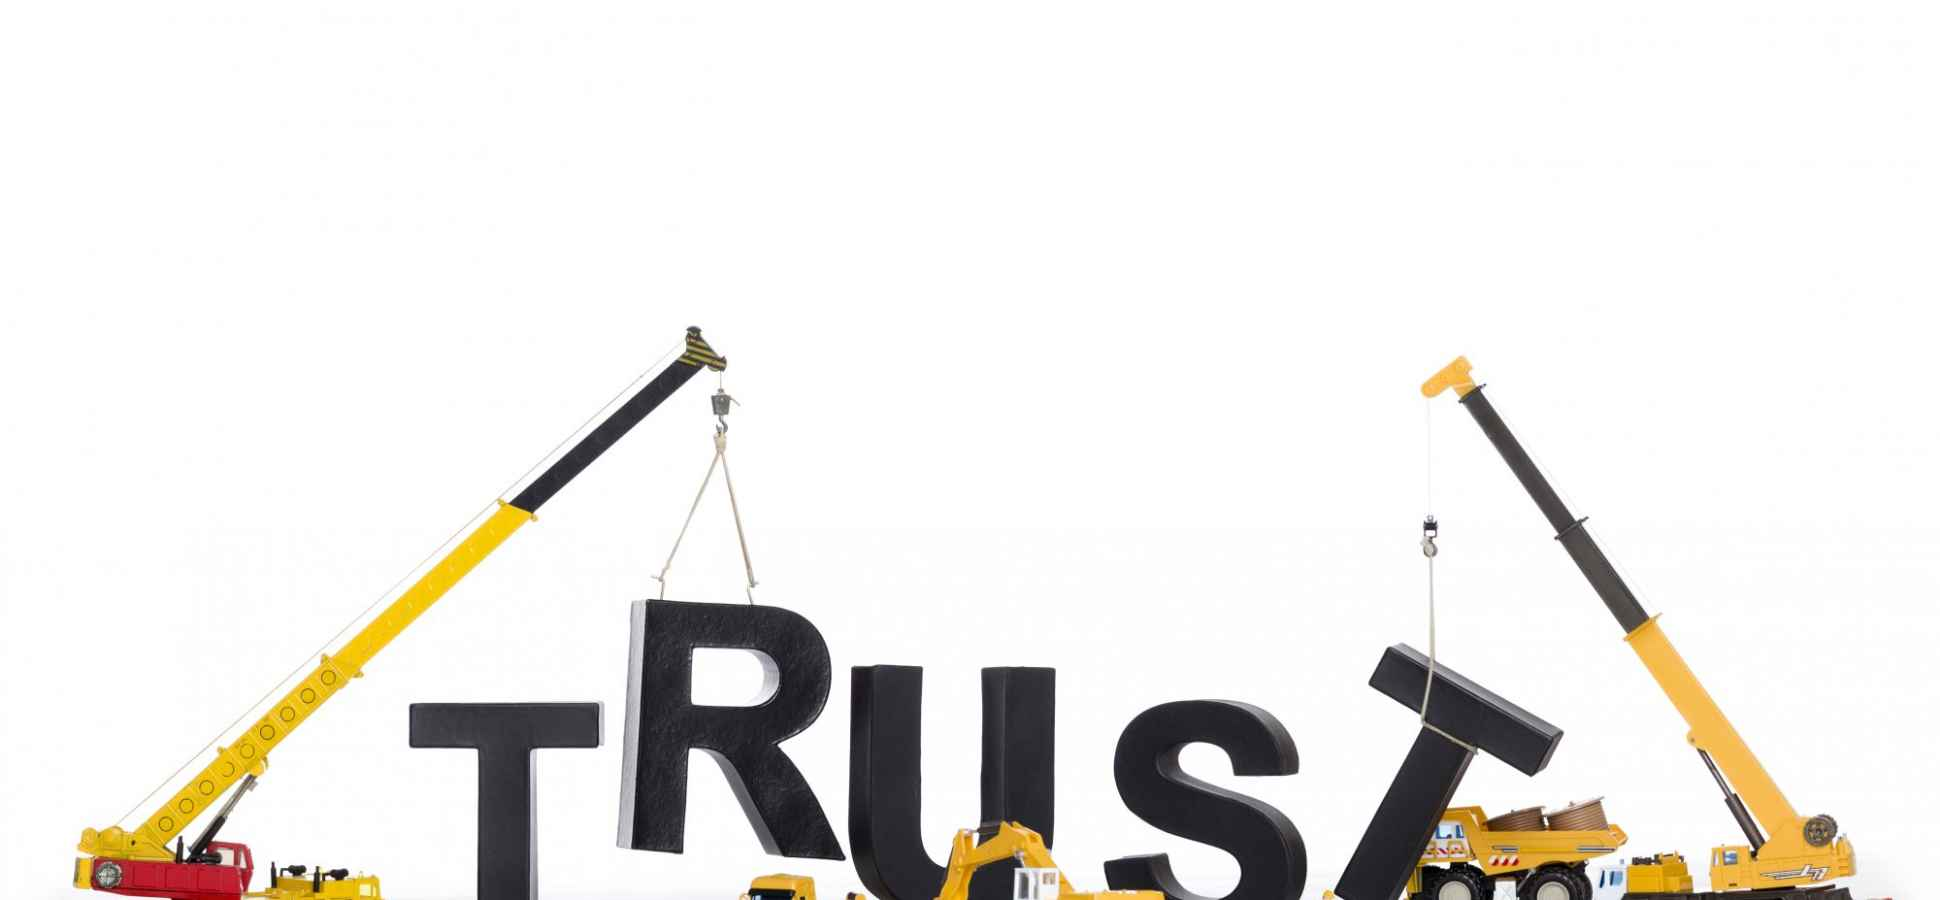 6 Ways to Lead with Trust